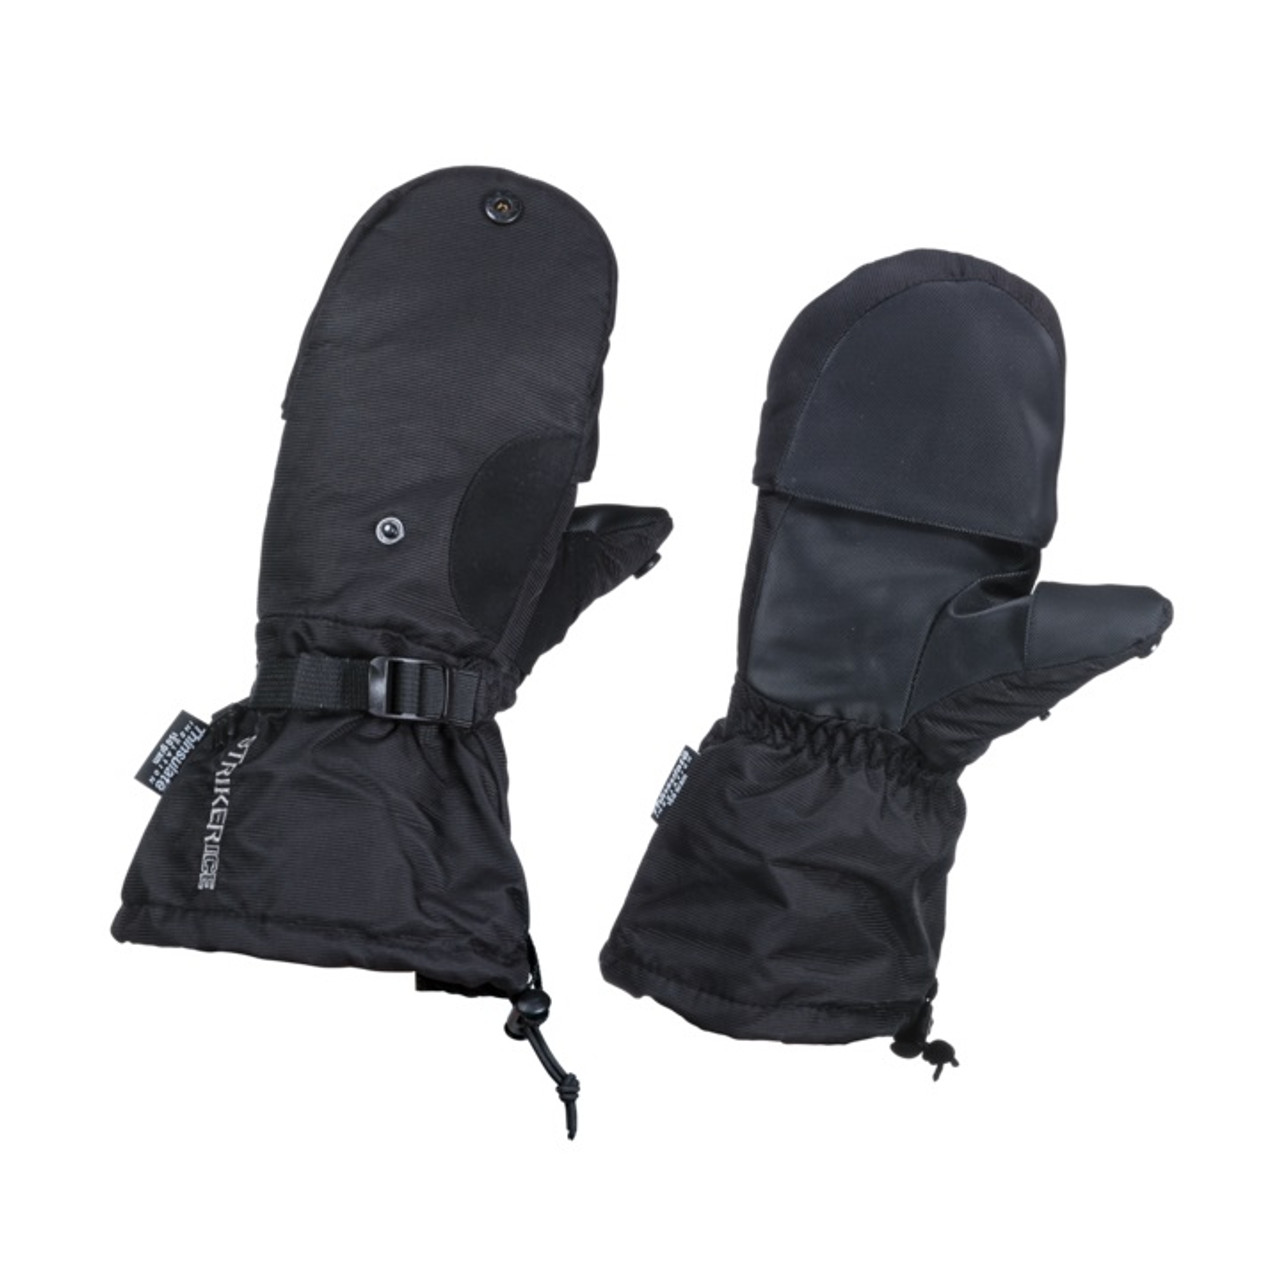 Striker Ice Climate Crossover Ice Fishing Mitts